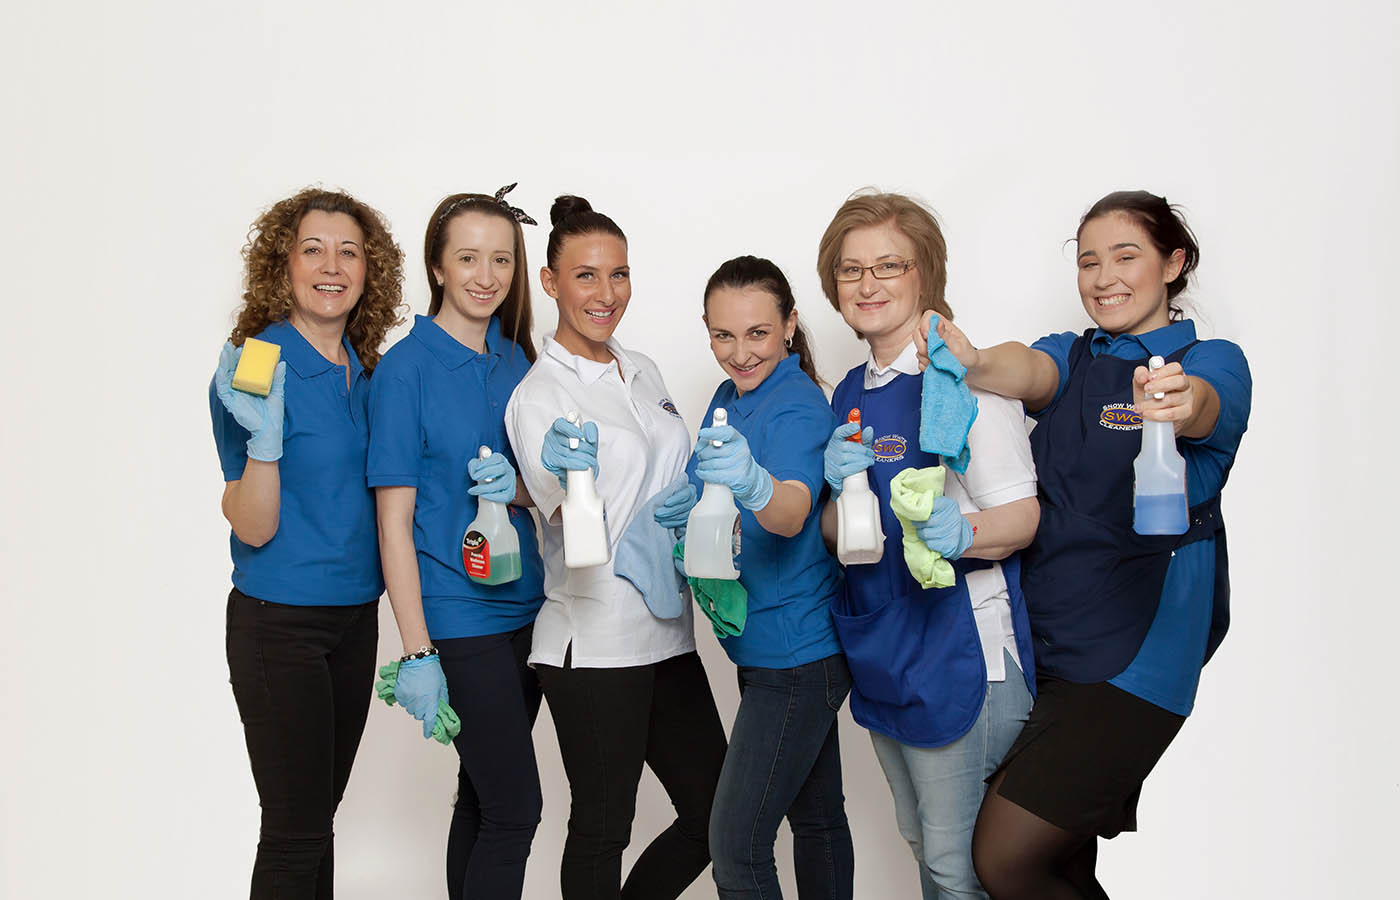 Cleaning Company Kingston Cleaning Services In Kingston